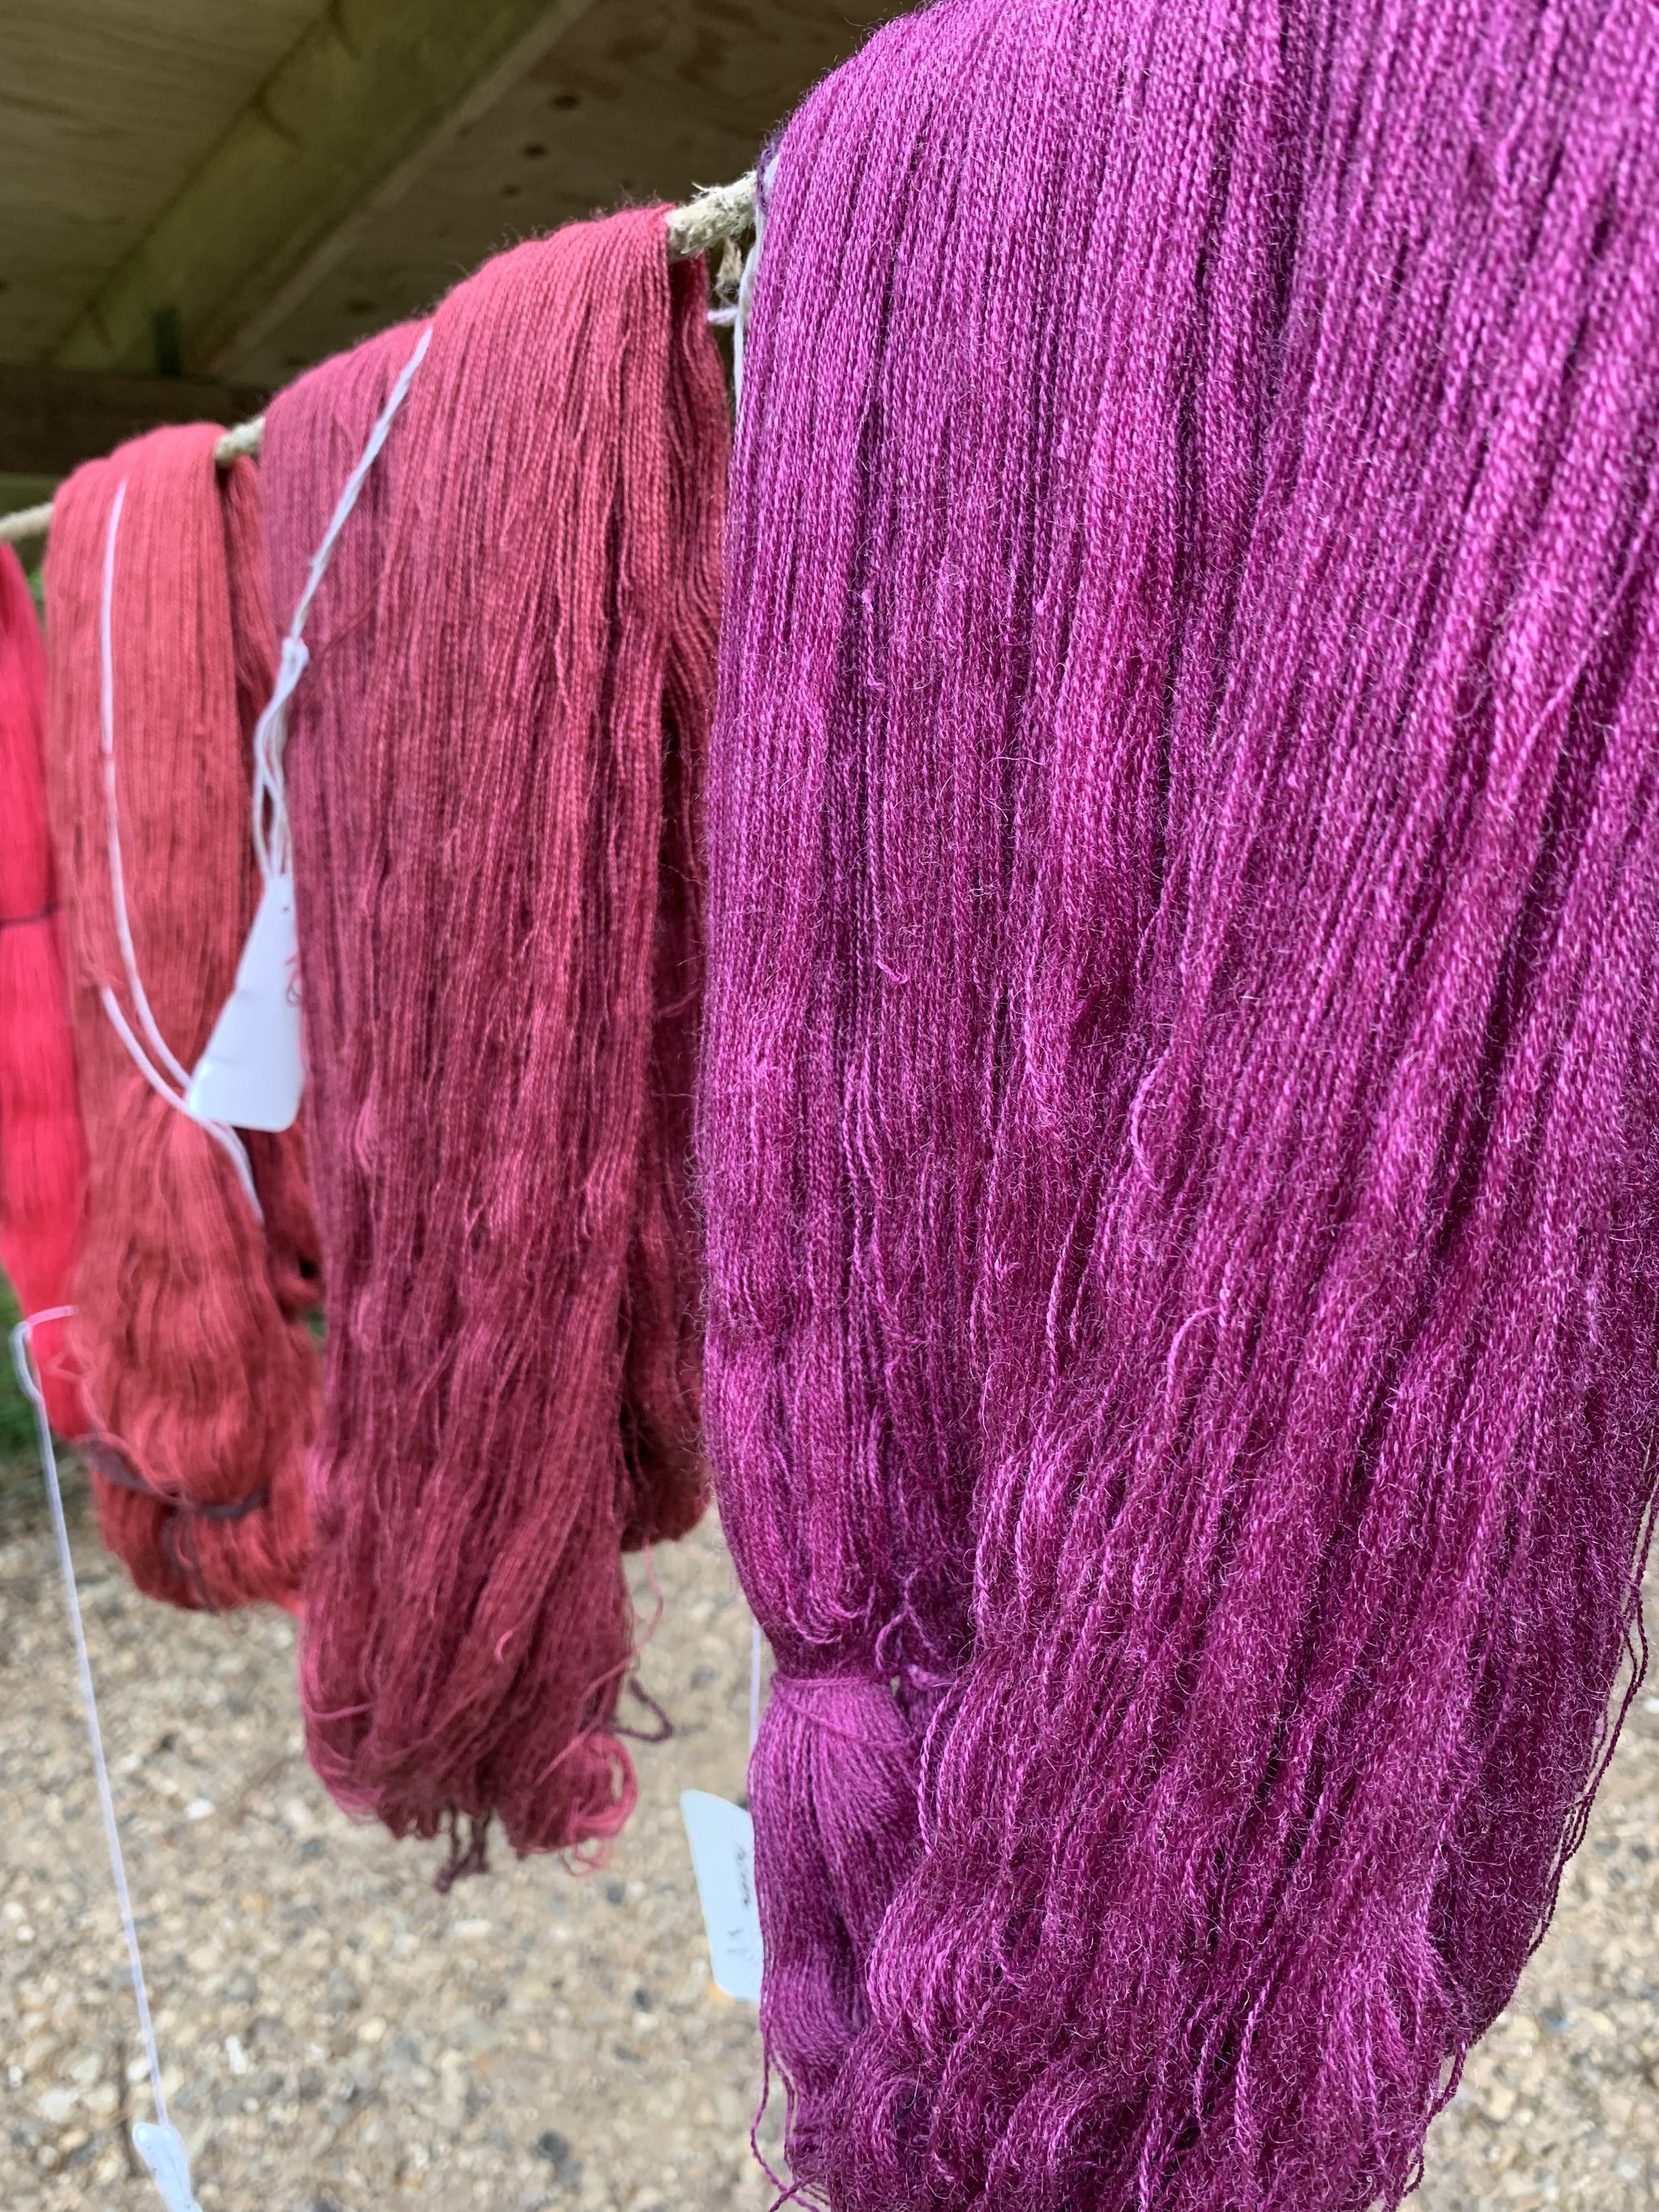 On the left is the original cochineal colour and on the right is the cochineal post potash bath